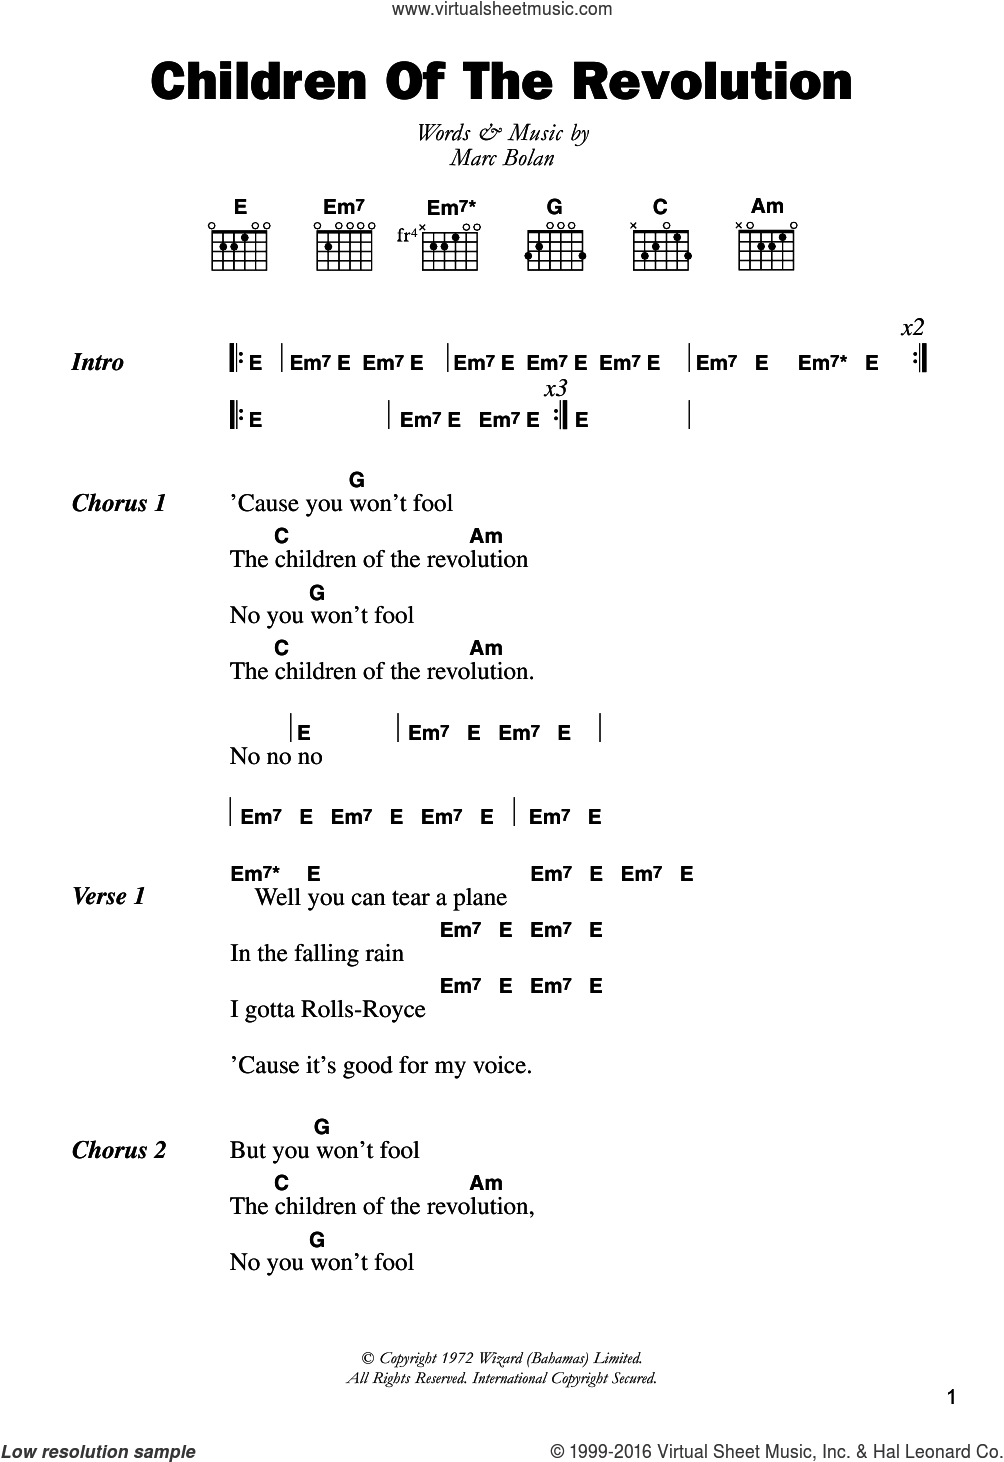 Children Of The Revolution sheet music for guitar (chords) by T Rex. Score Image Preview.